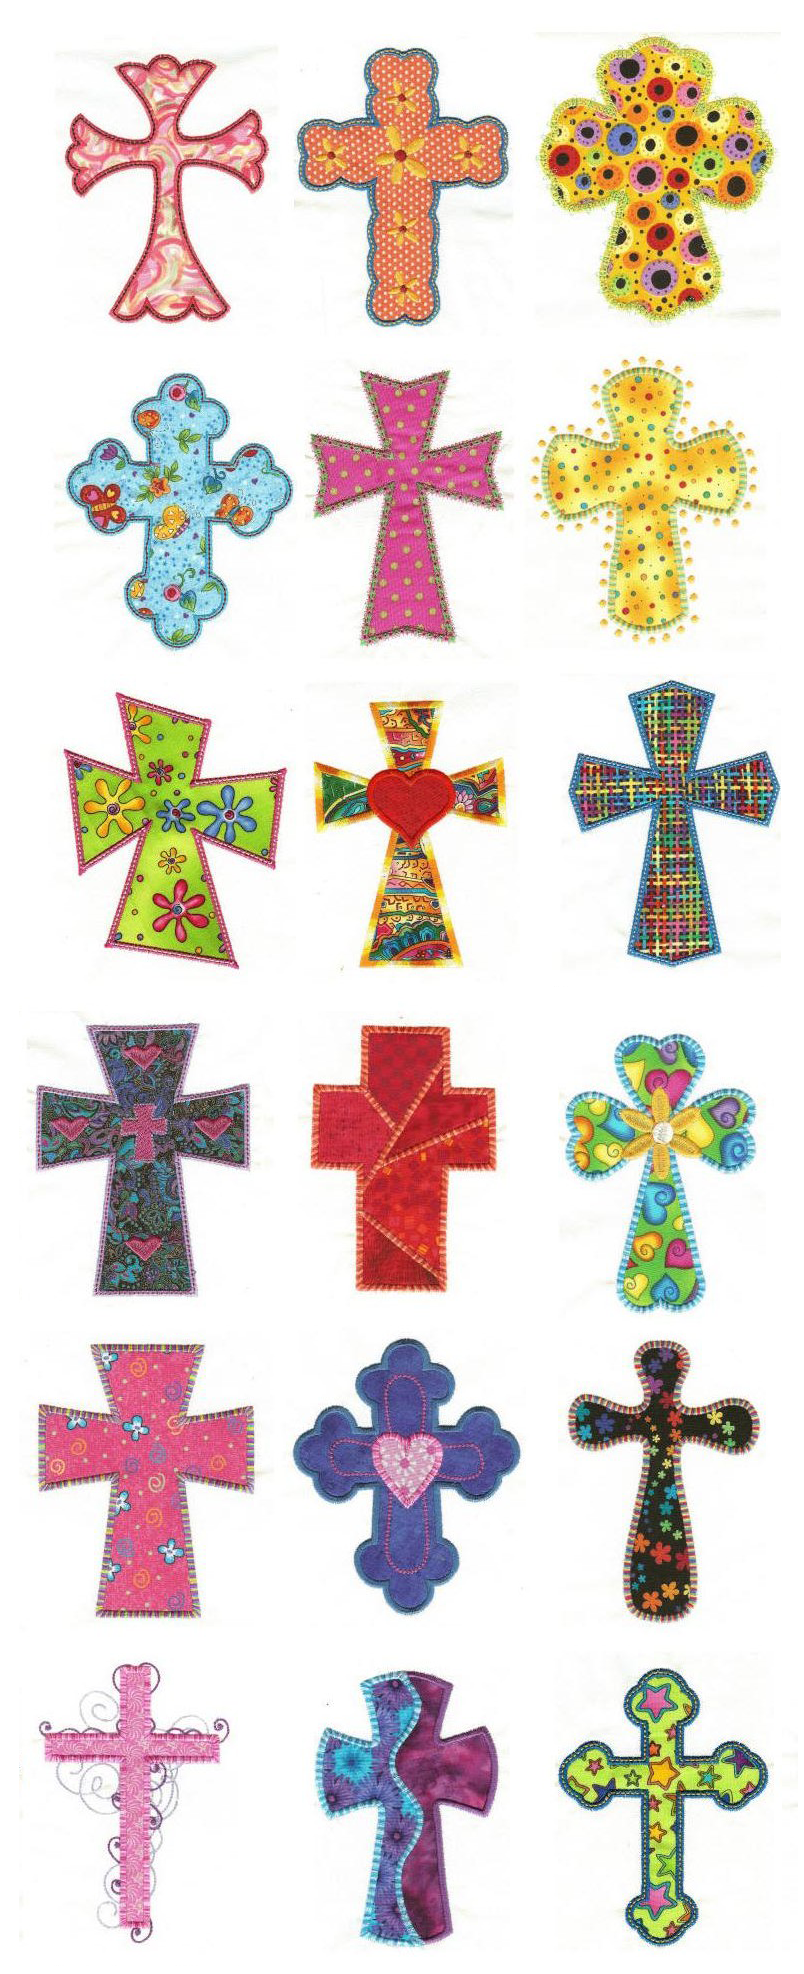 Crosses Applique Design Set Is Available For Instant Download At Www